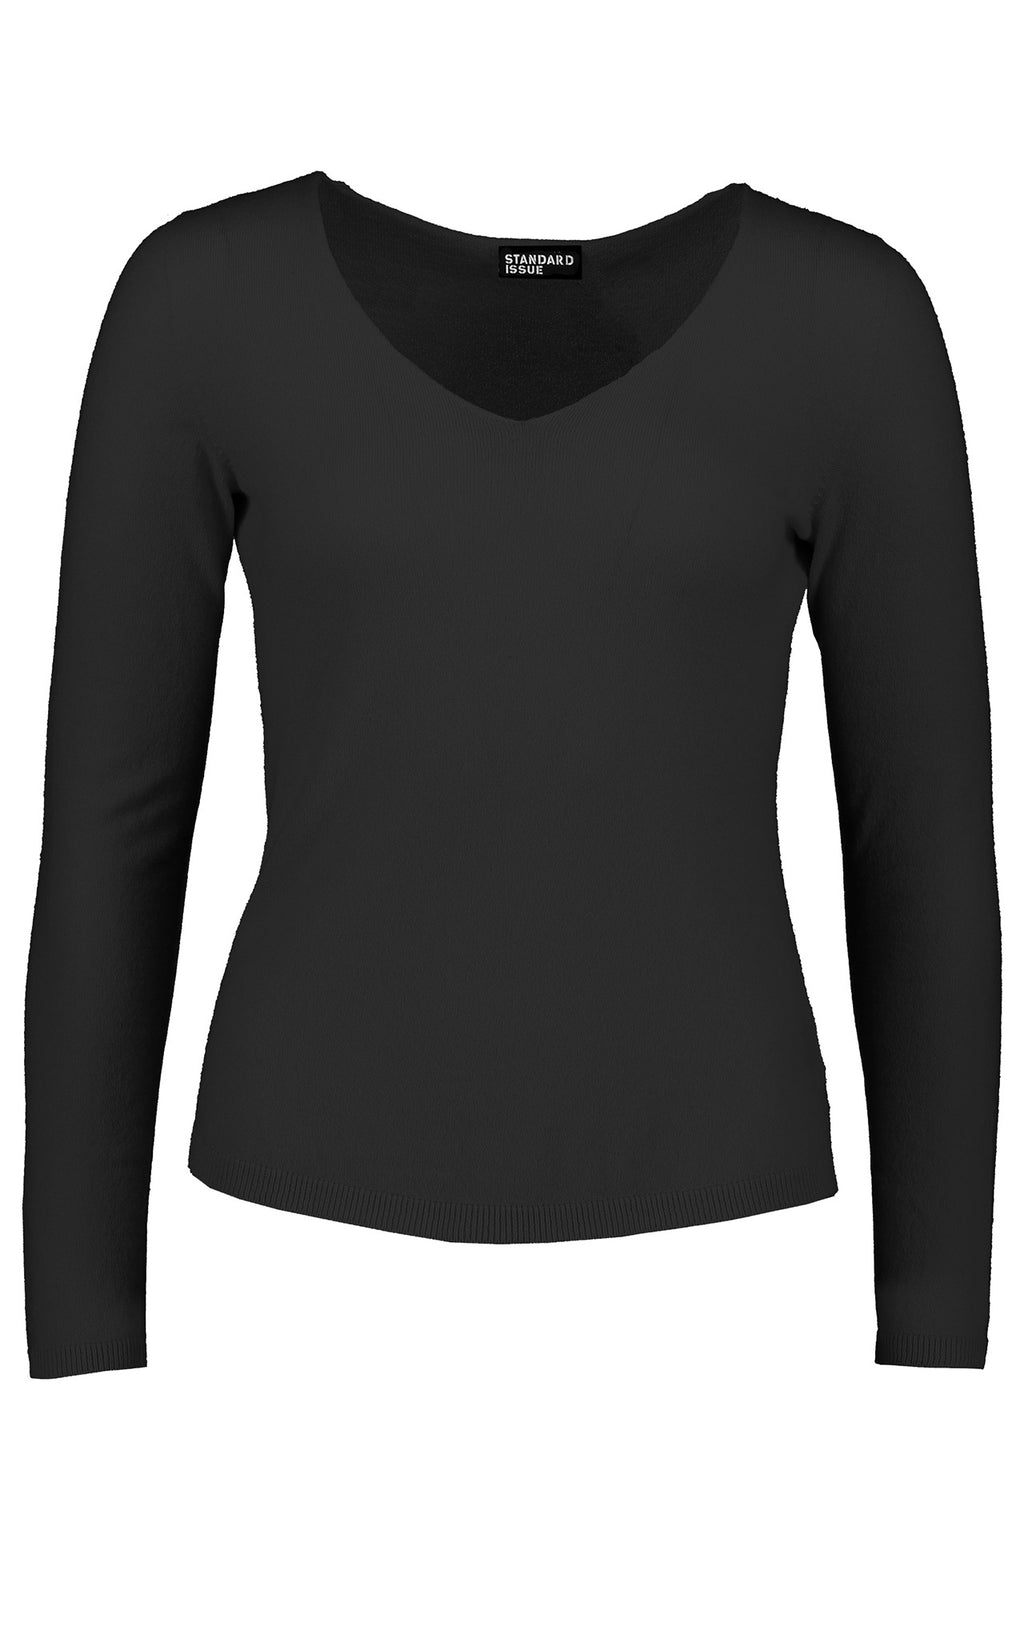 STANDARD ISSUE - SI2093 CASHMERE FITTED V NECK BLACK